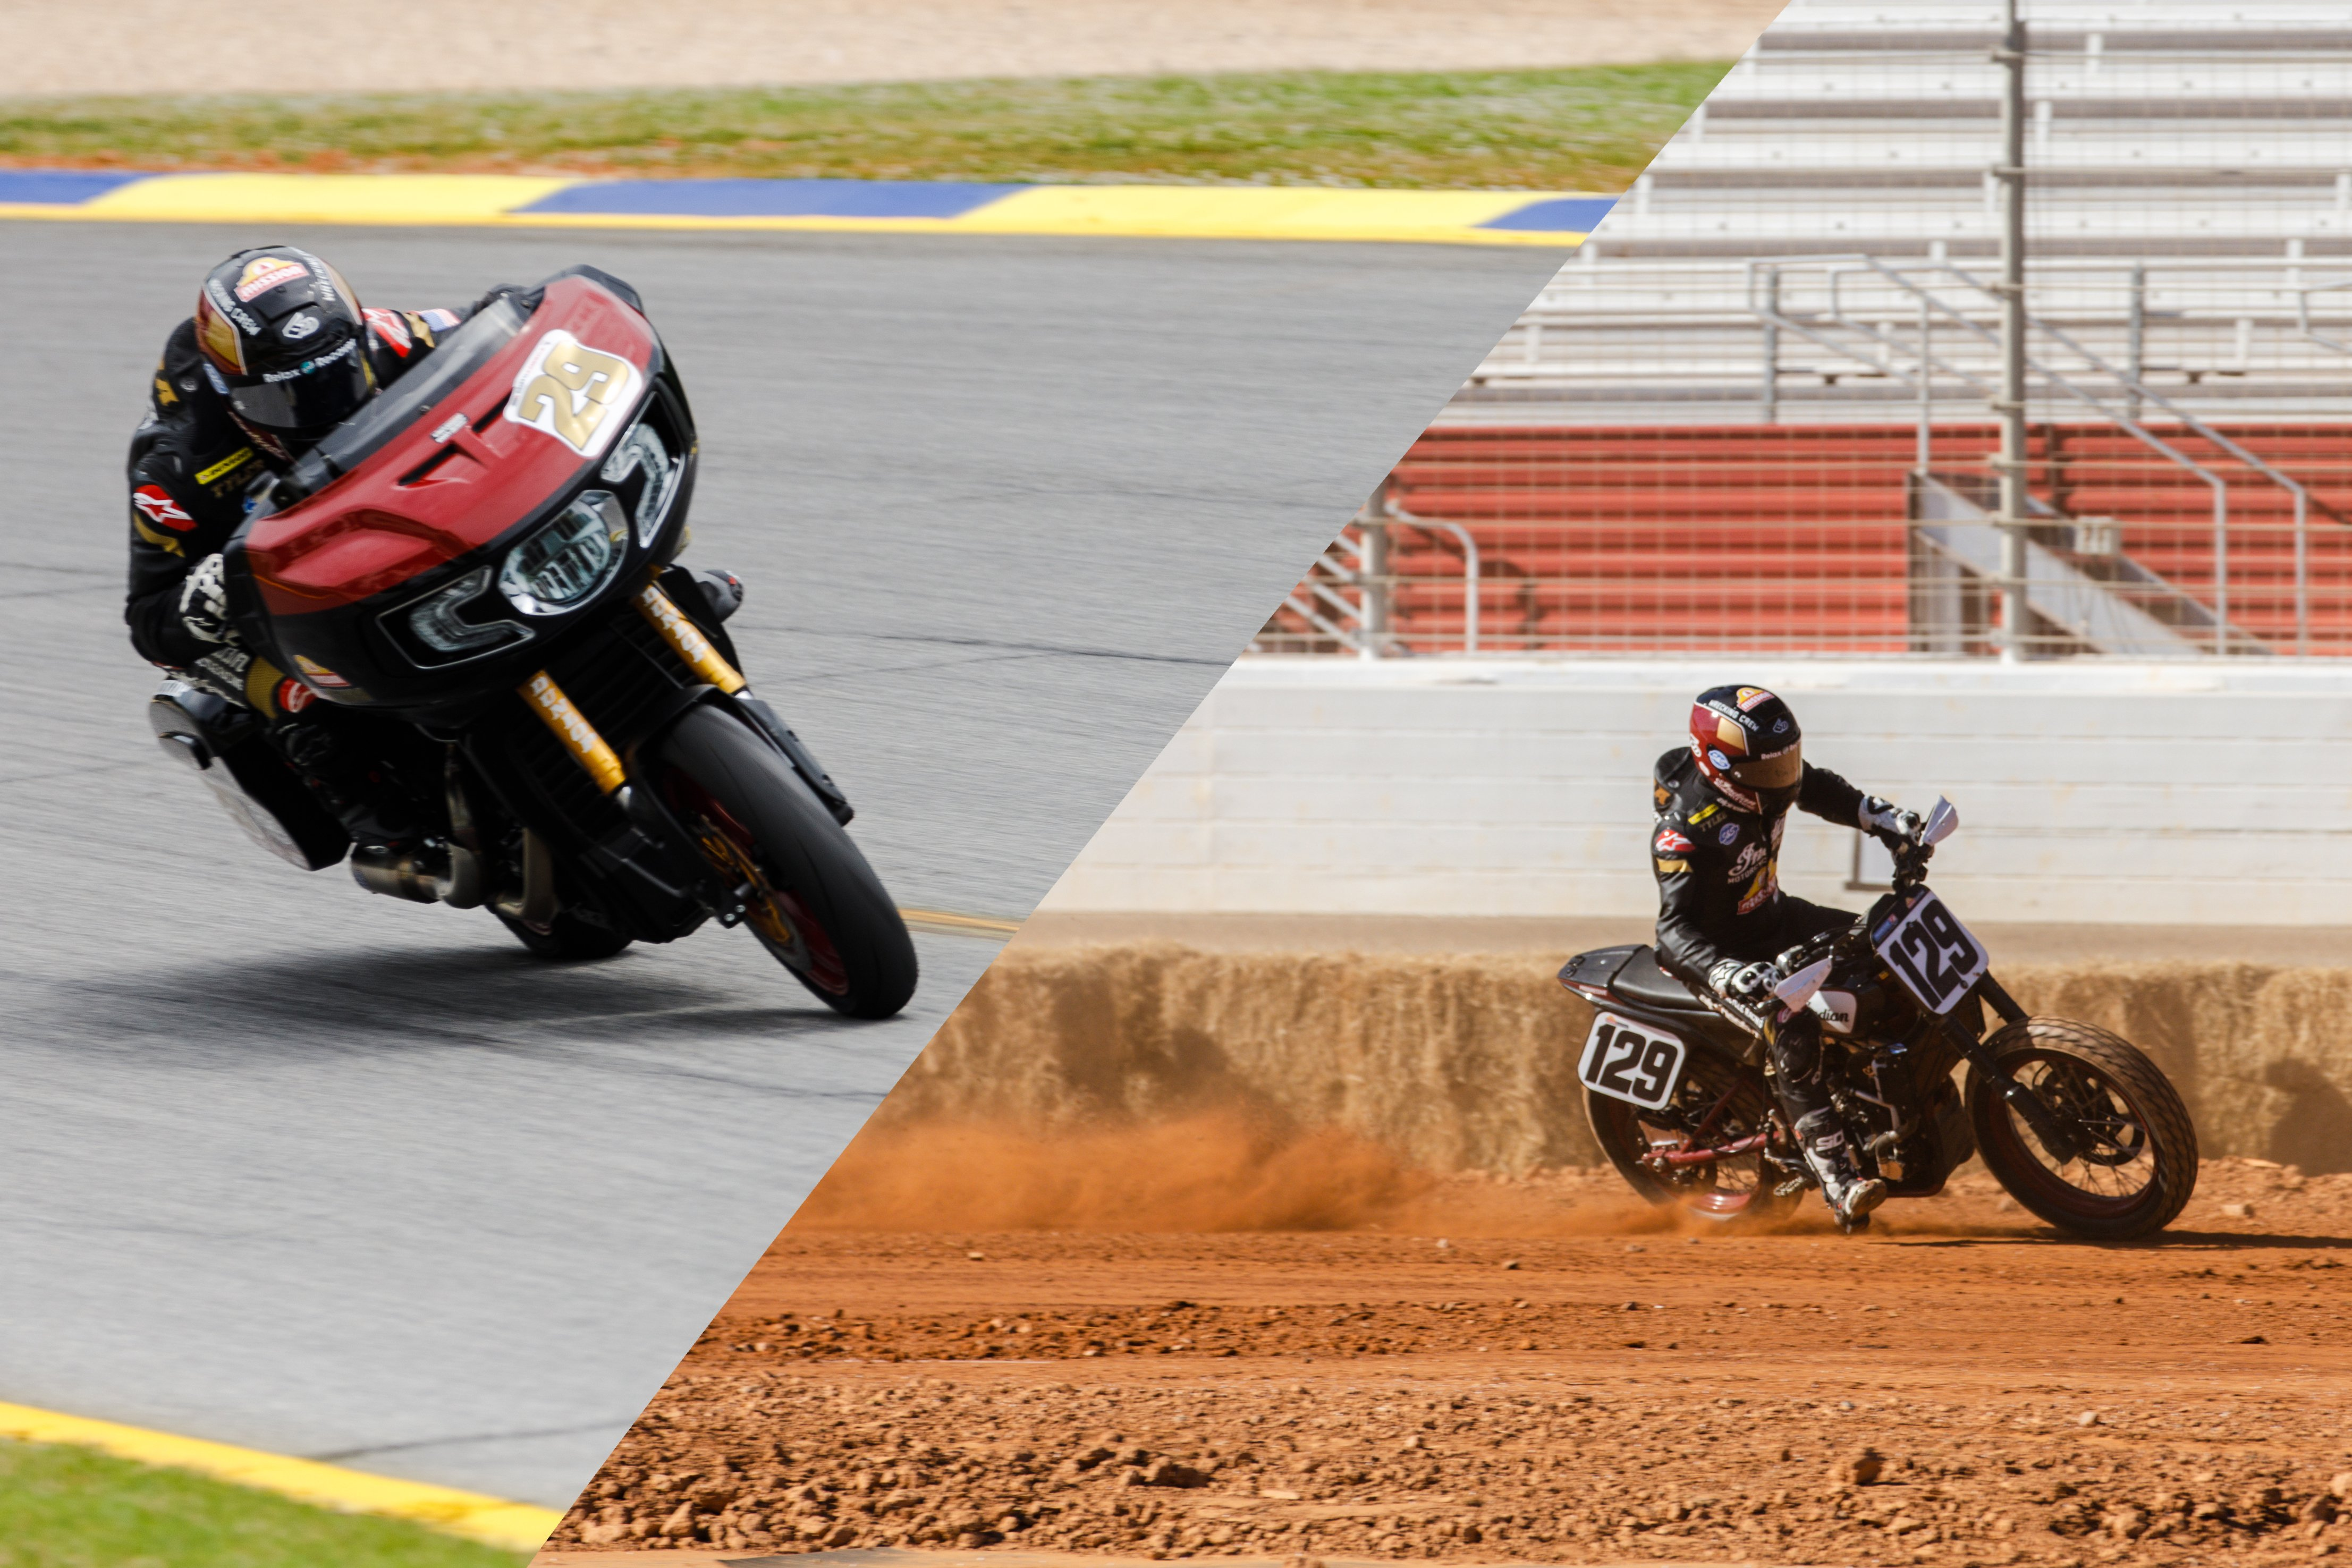 S&S and Indian Rider Tyler O'Hara Races American Flat Track & King of the Baggers on the Same Weekend!